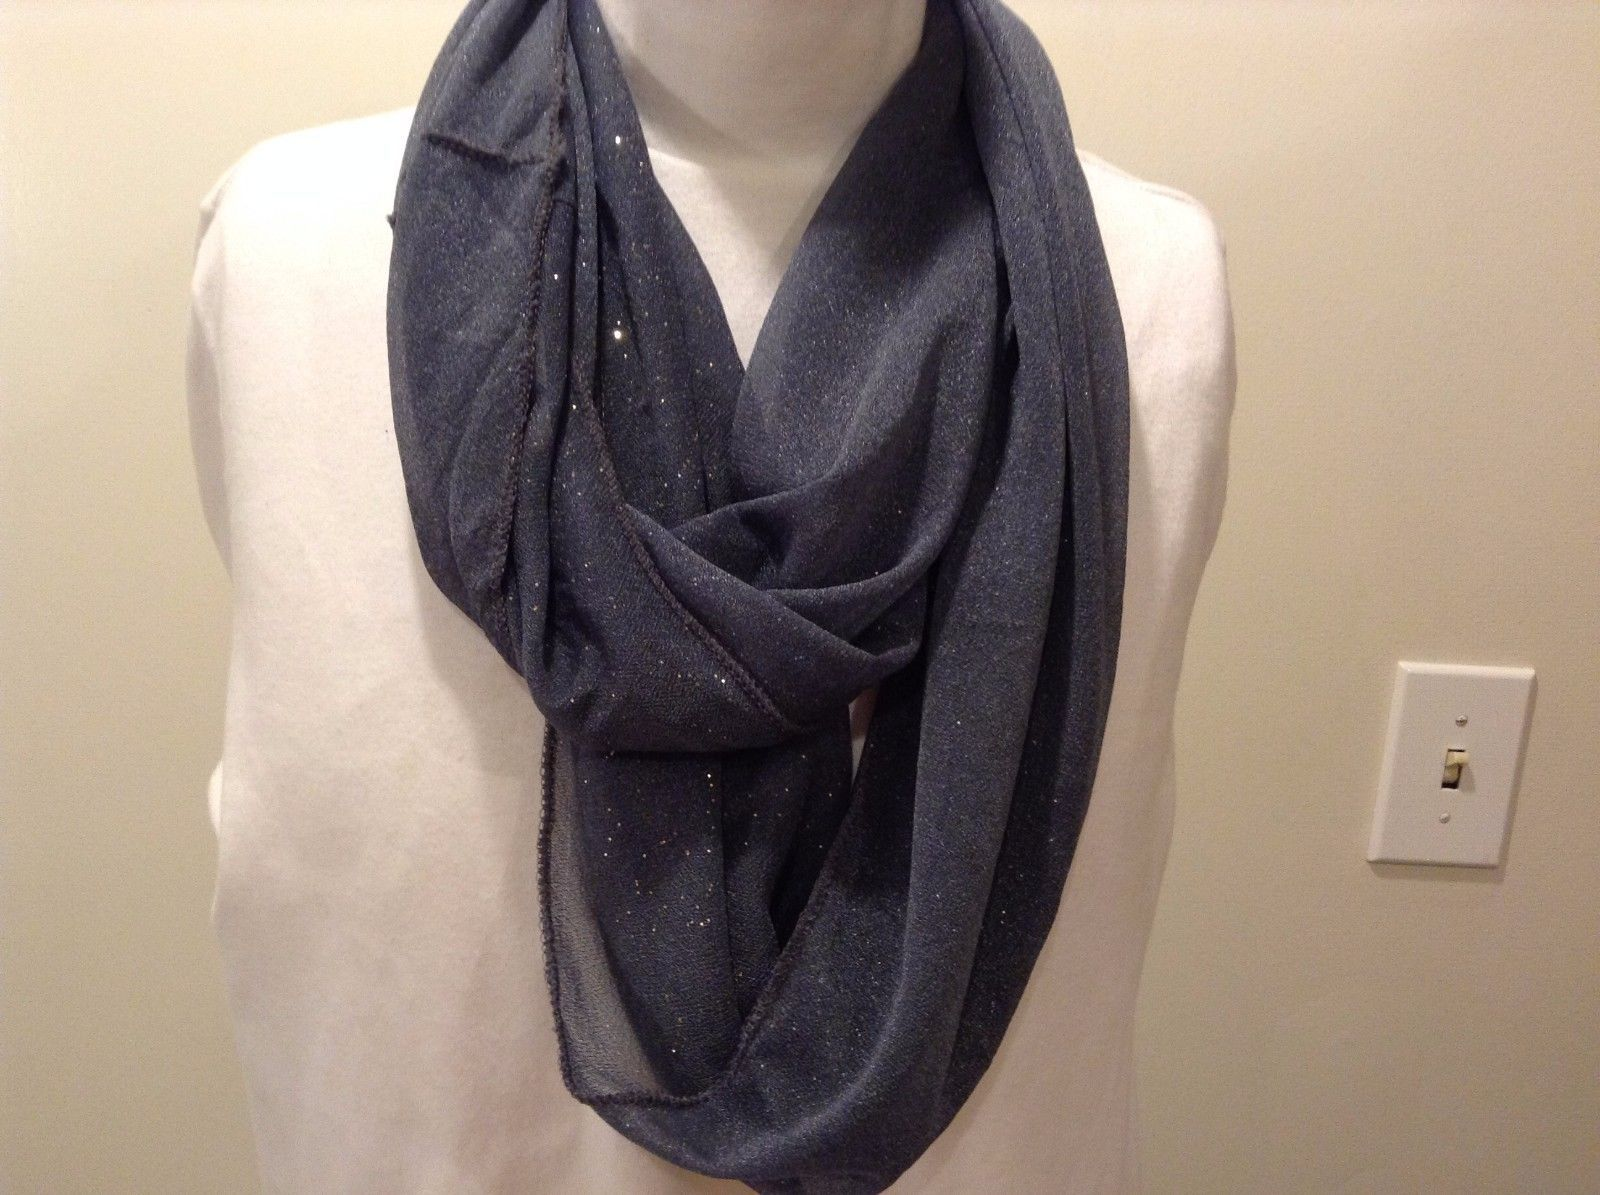 Howard's 100% Polyester Gray Sparkled Infinity Scarf